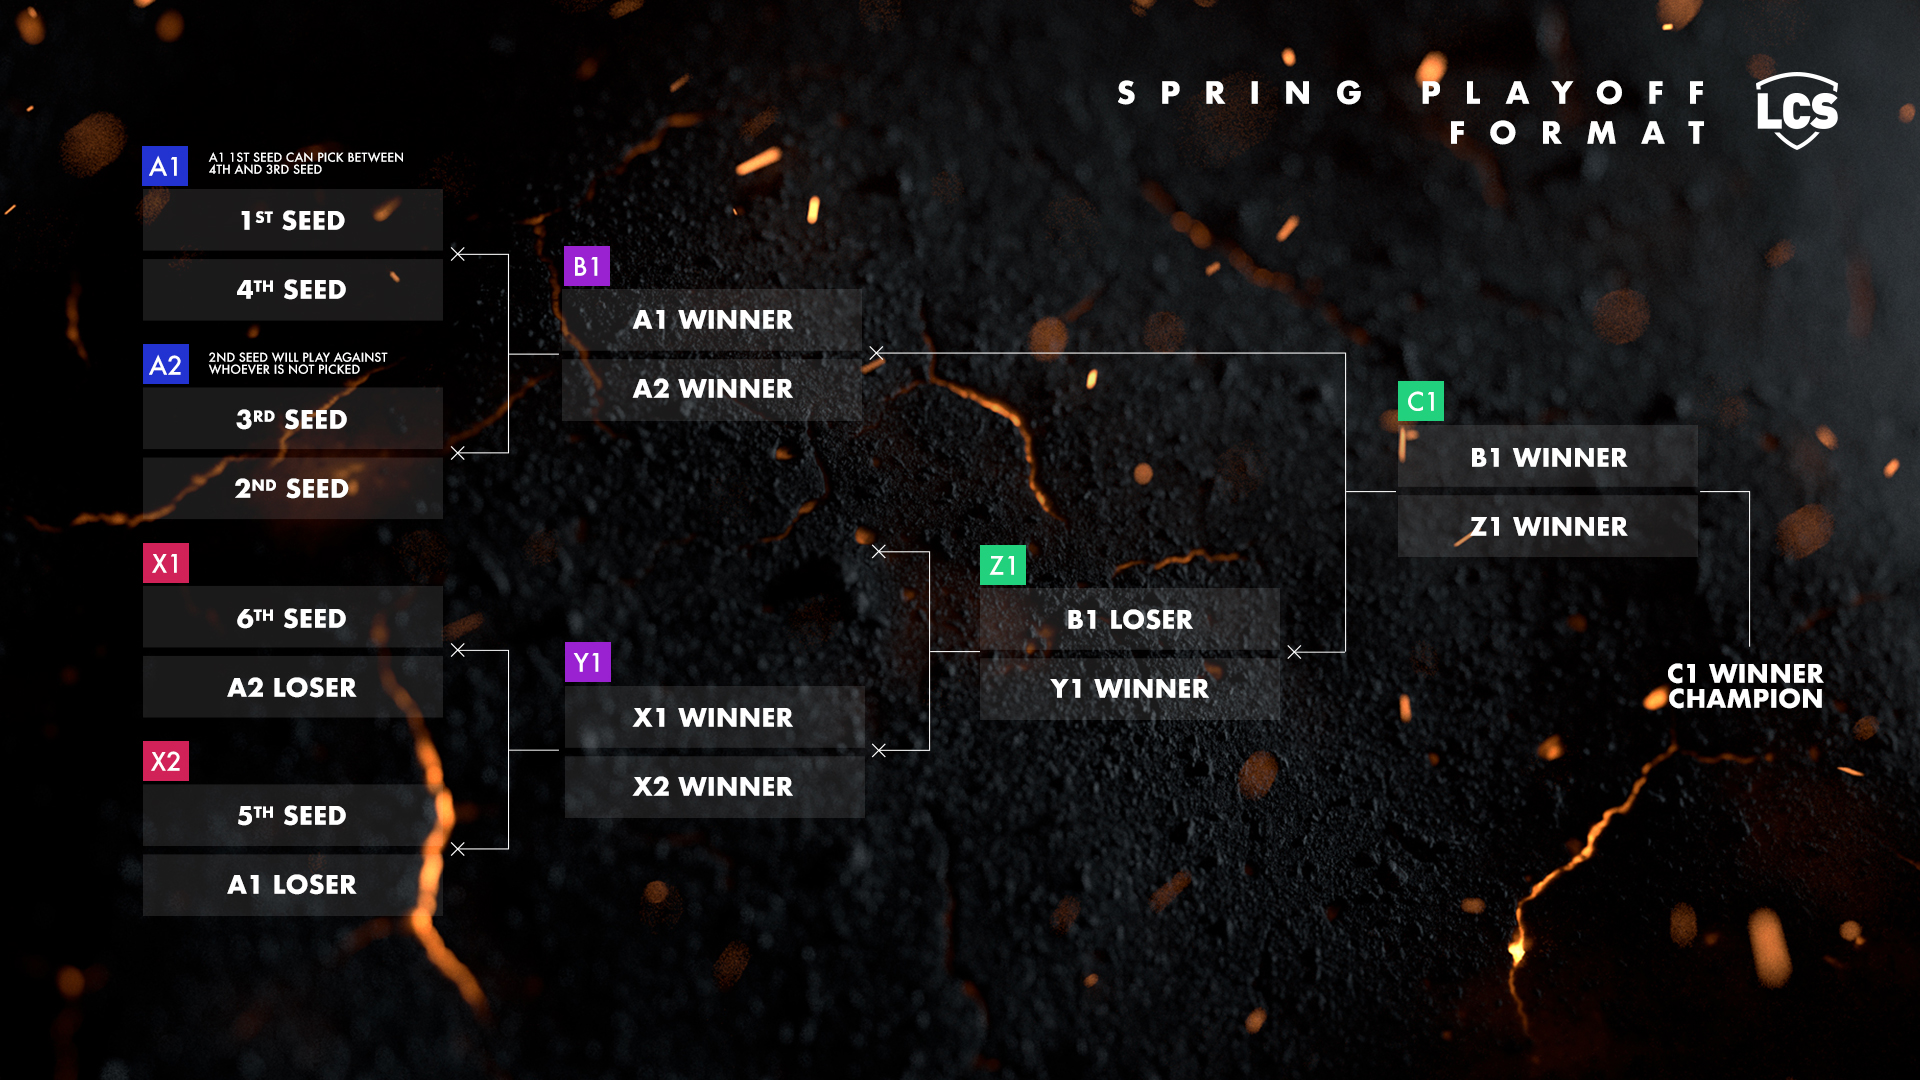 spring playoffs format lcs 2020